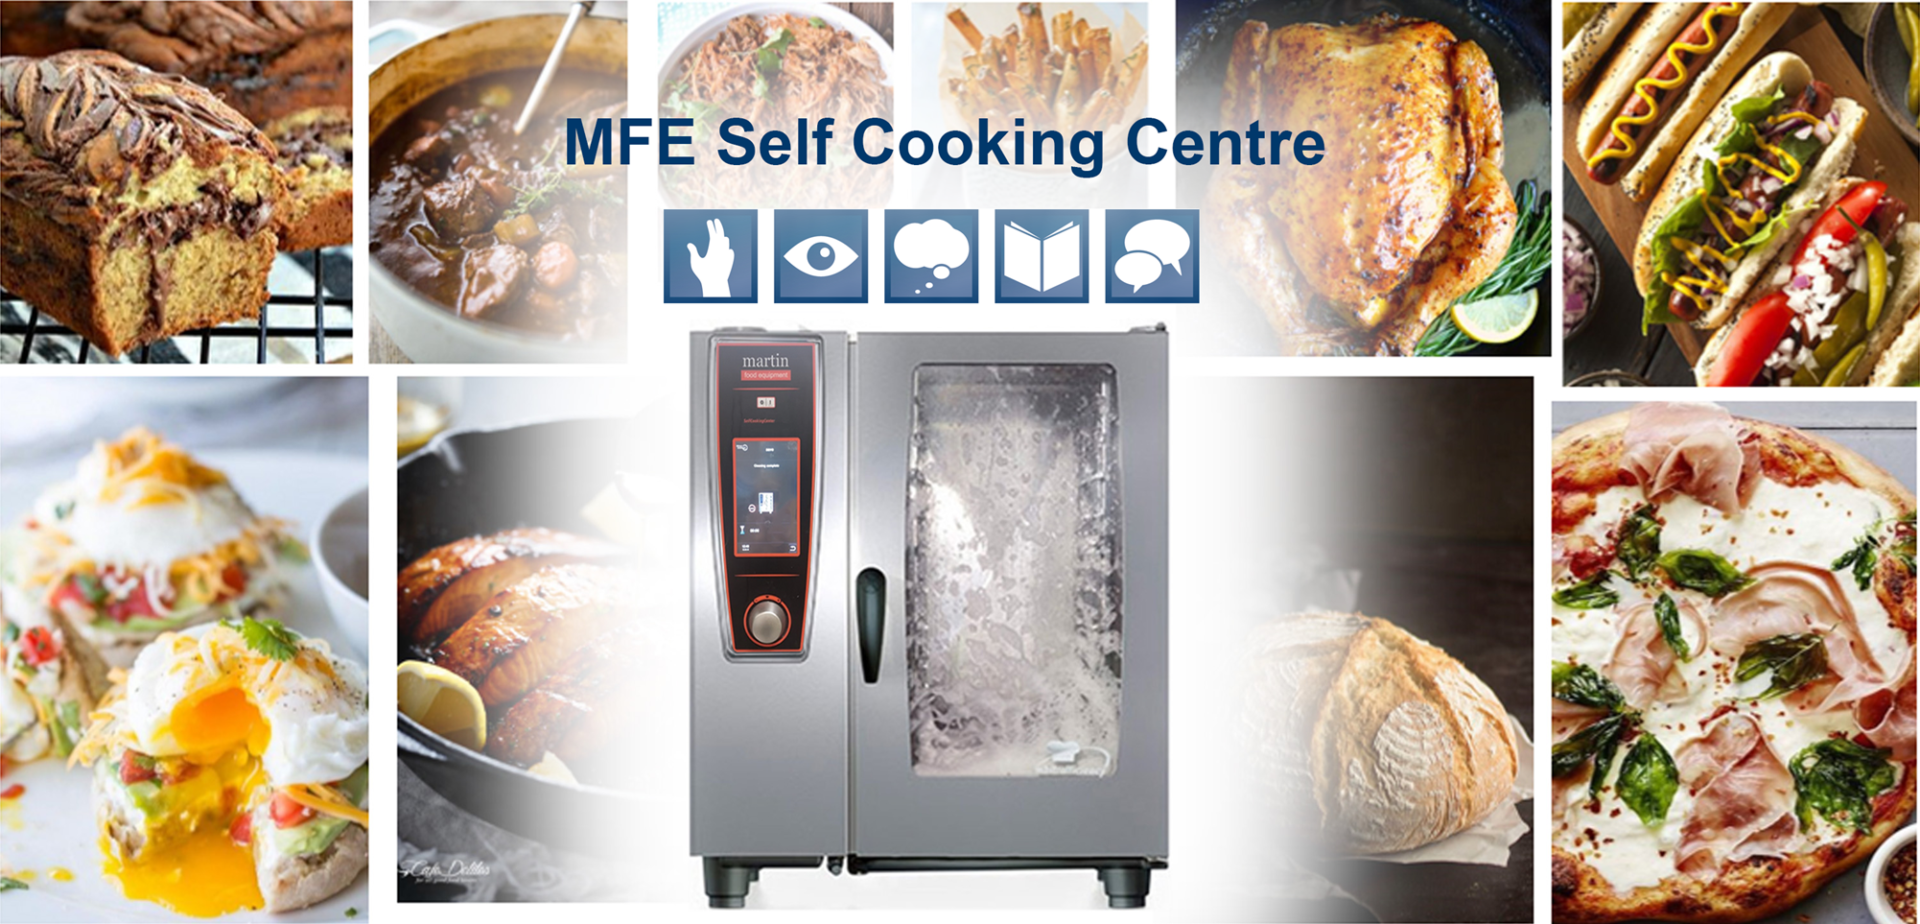 Martin Food Equipment MFE-SCC-Collage MFE SELF COOKING CENTRE - powered by Rational -  Live Demonstration Events